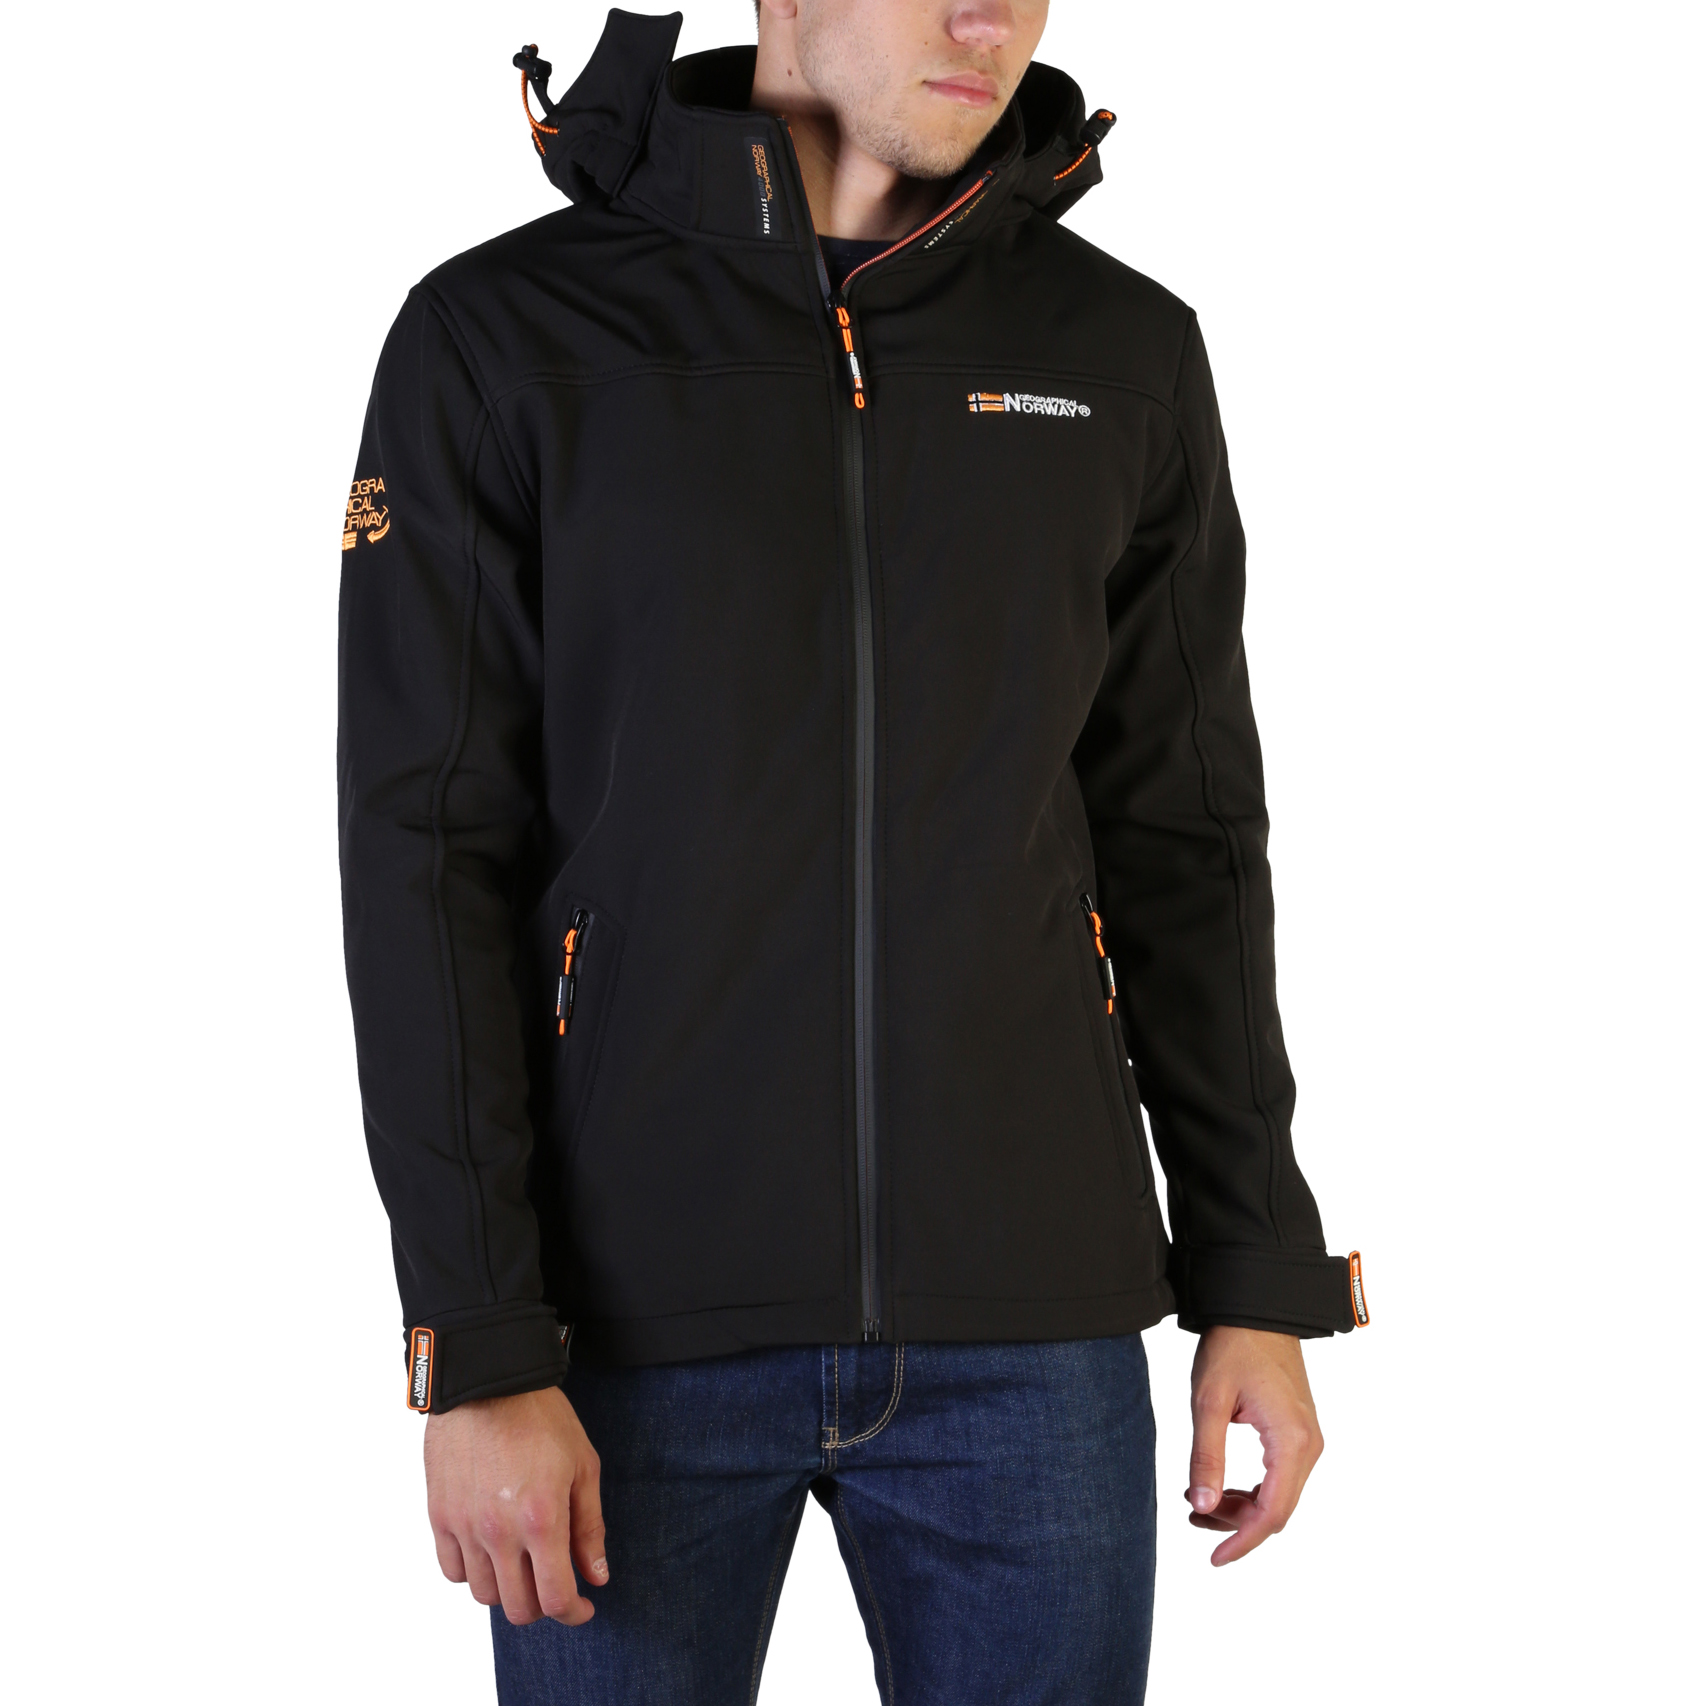 Geographical Norway Takeaway man